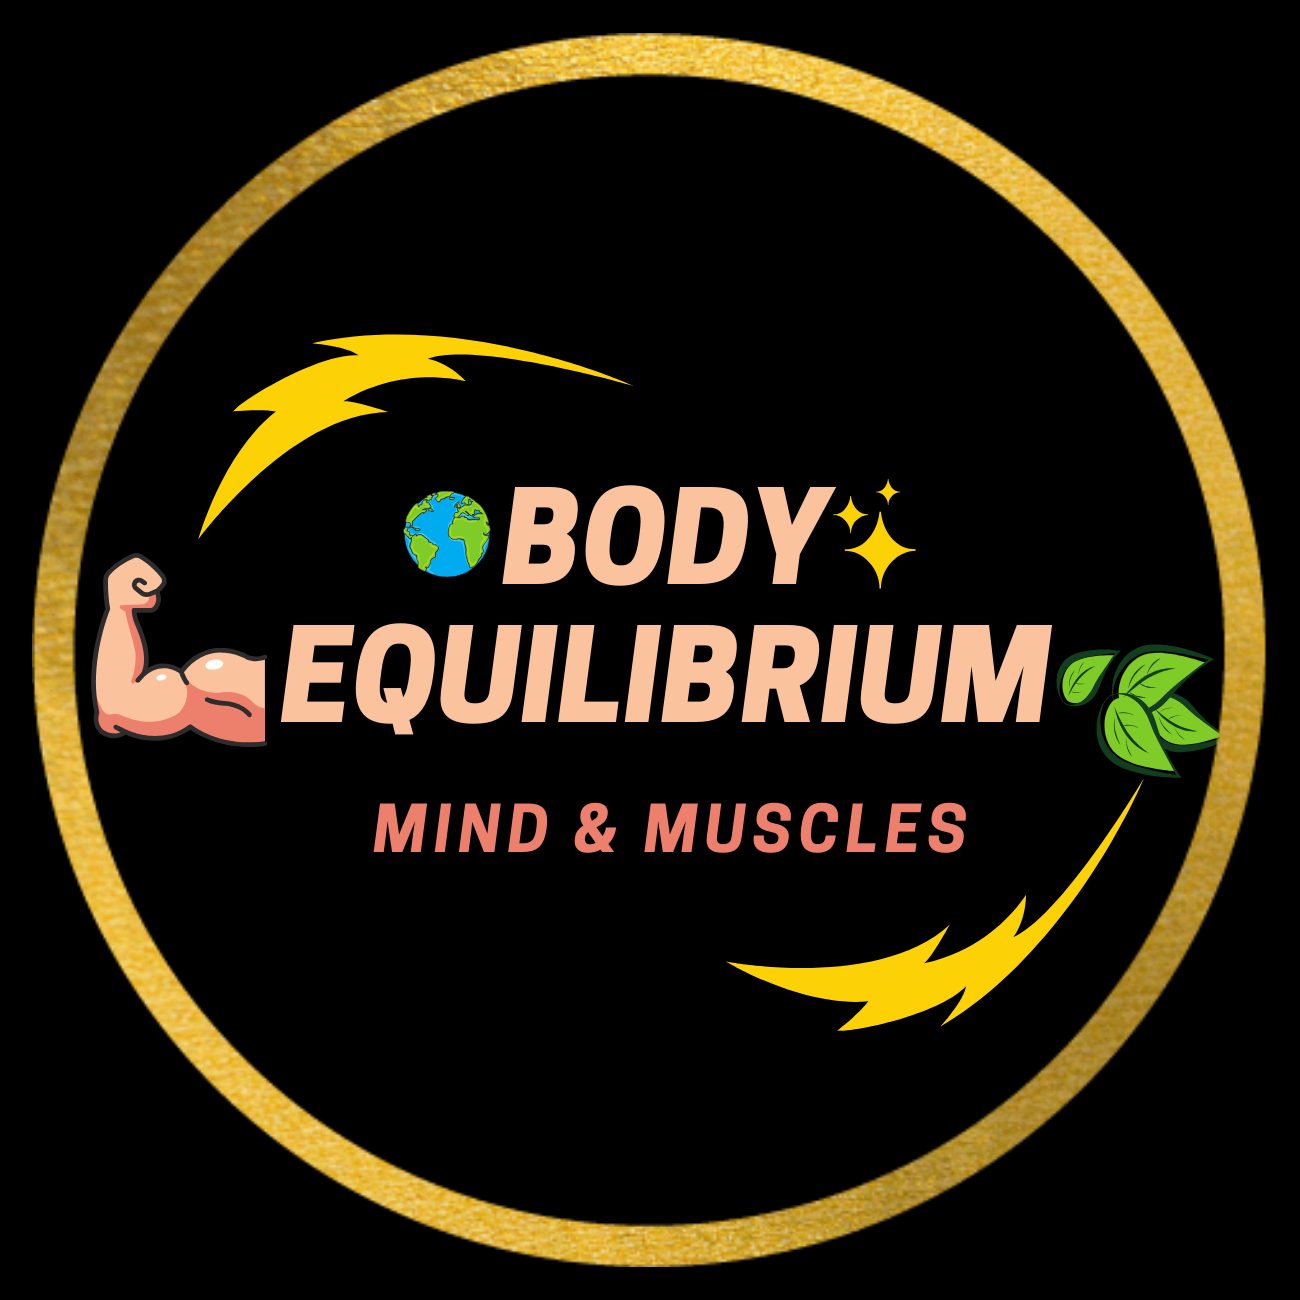 The Body Equilibrium Logo